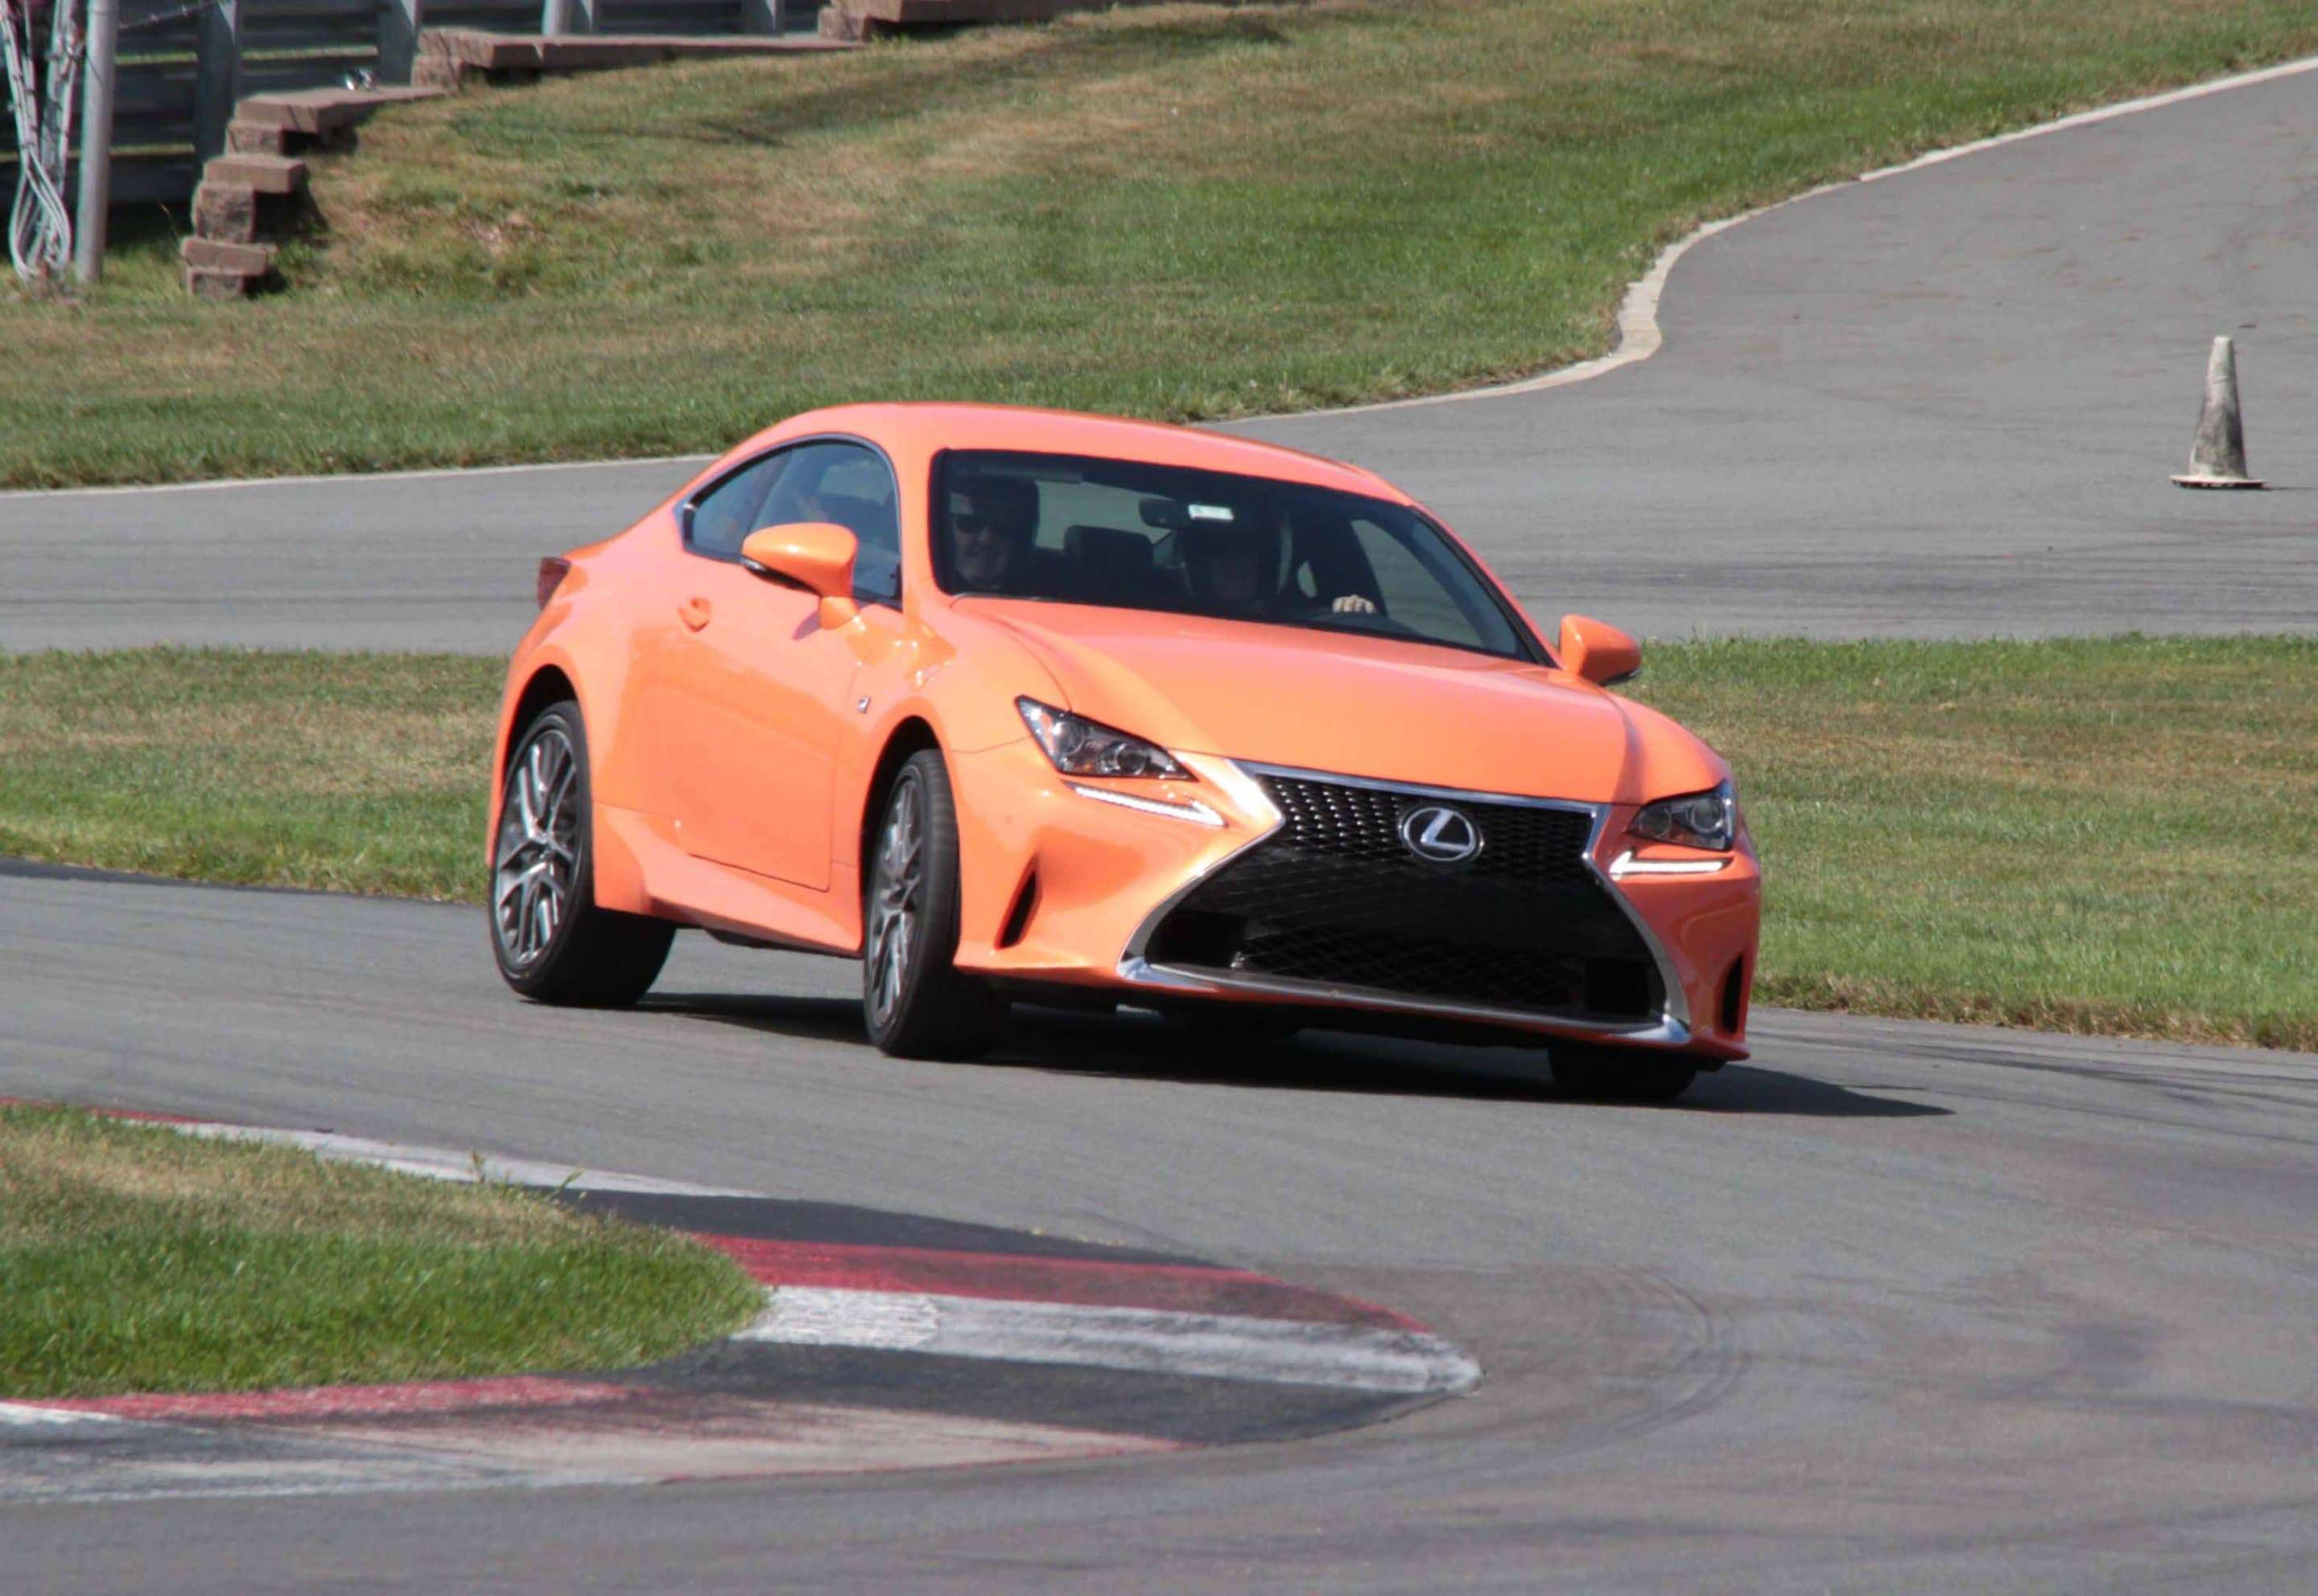 http://www.thedetroitbureau.com/wp-content/uploads/2014/09/2015-Lexus-RC-F-on-track-in-corner.jpg